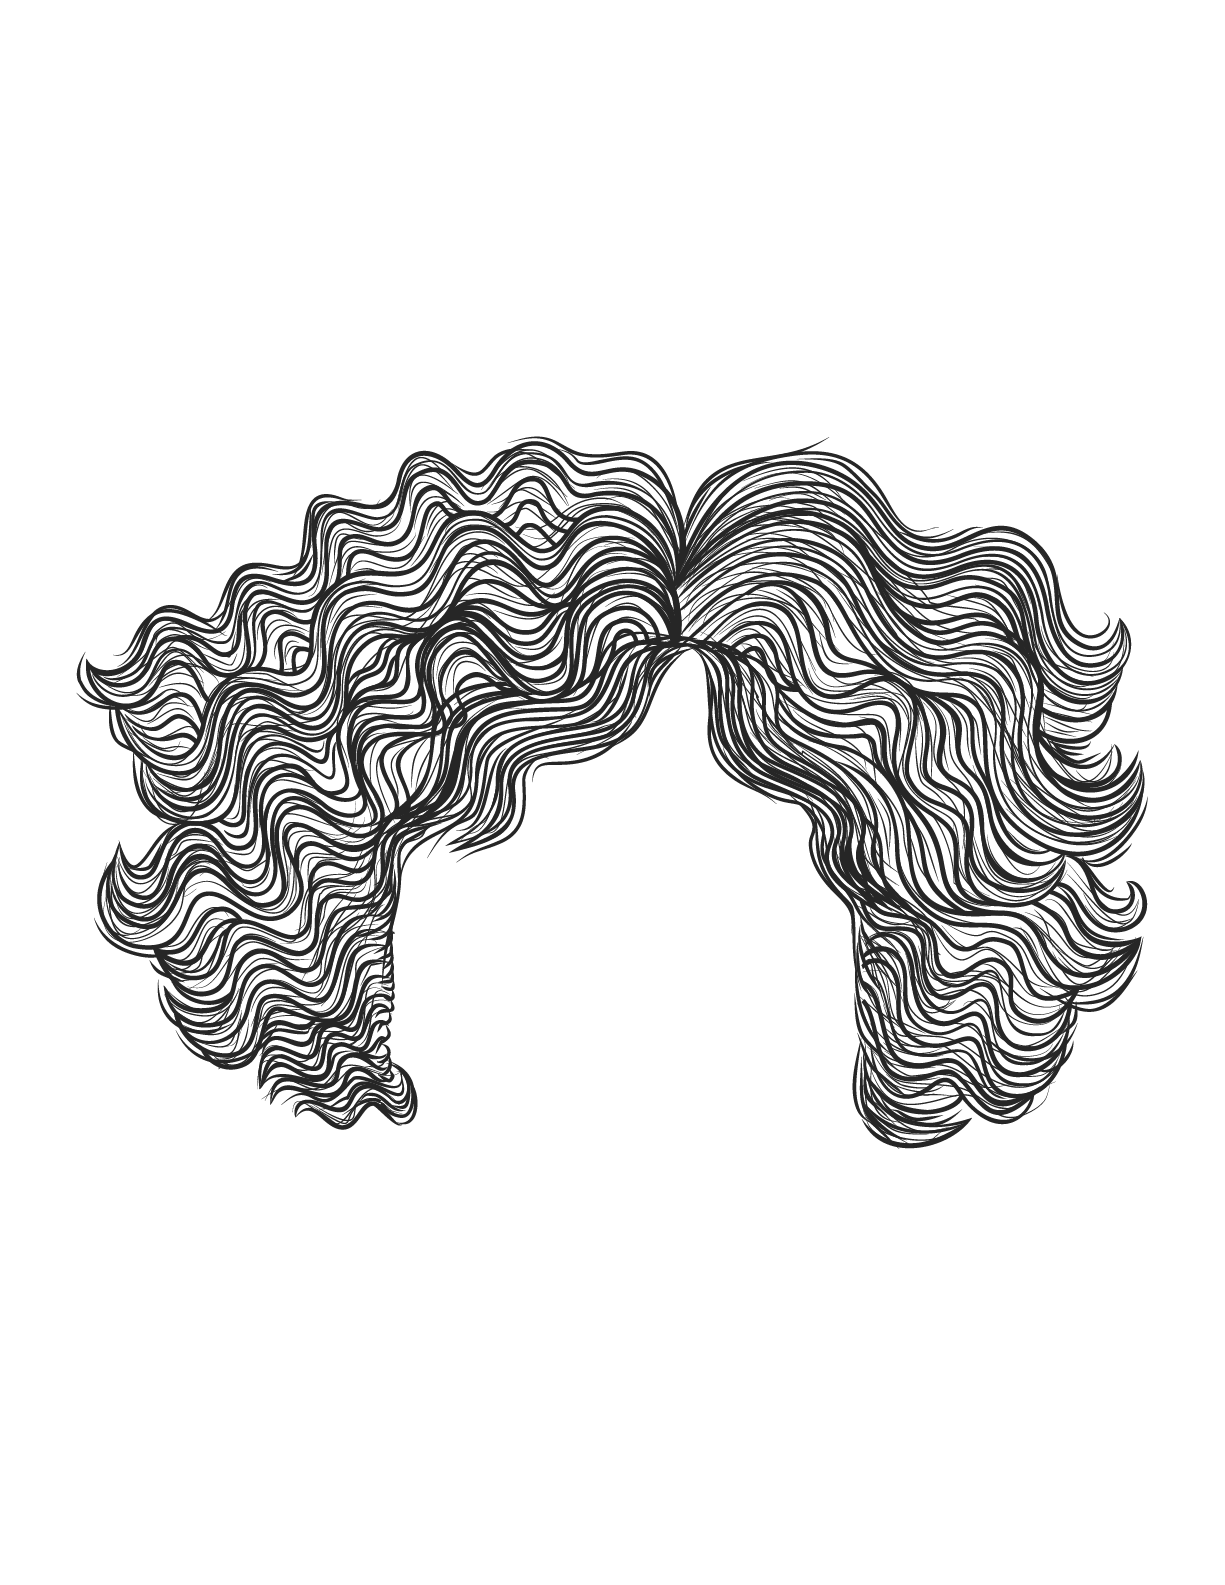 Short Curly Hair Design Drawing